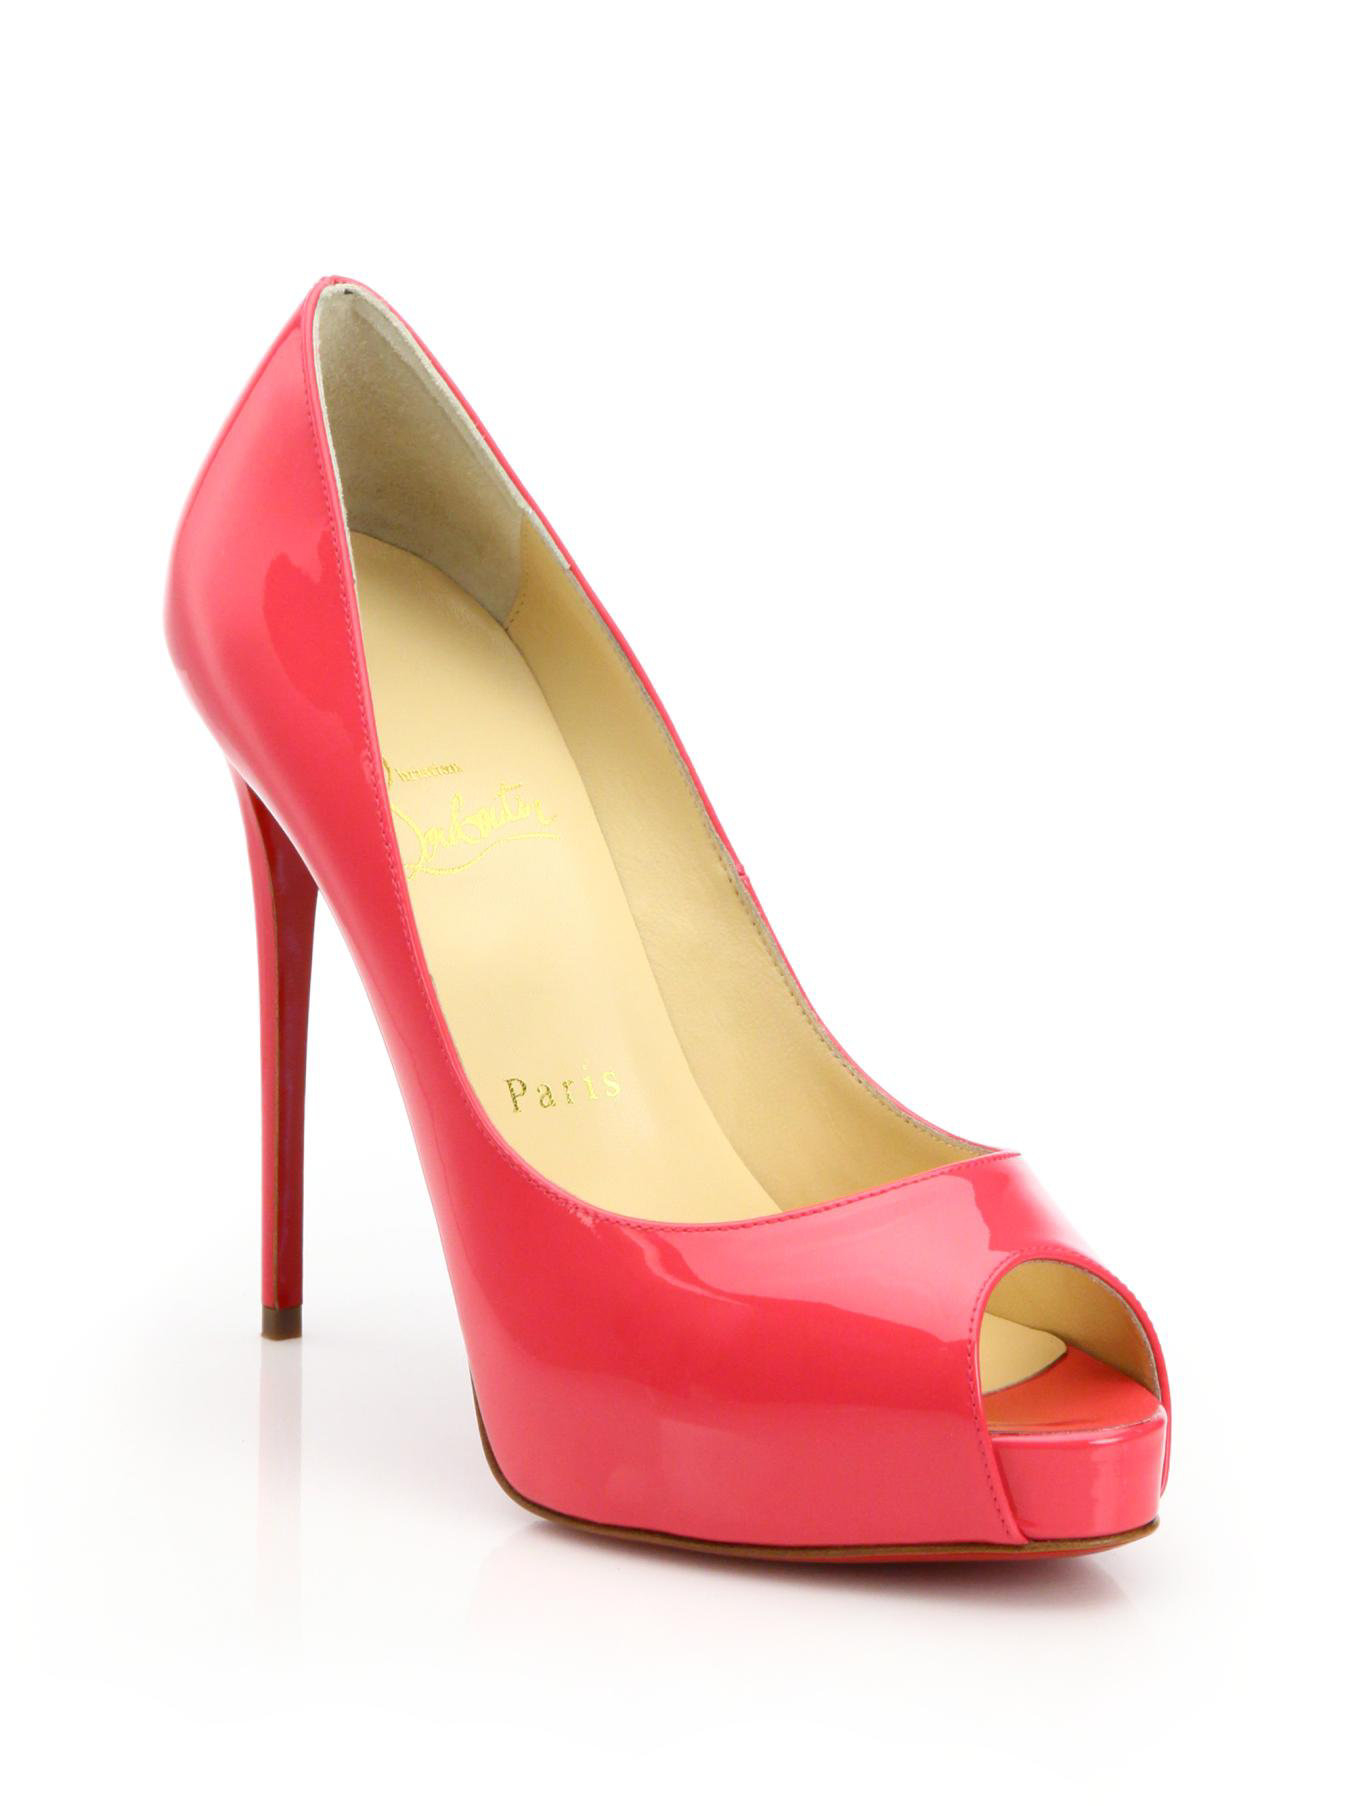 ae4ab65e8b96 Gallery. Previously sold at  Saks Fifth Avenue · Women s Christian  Louboutin Very Prive